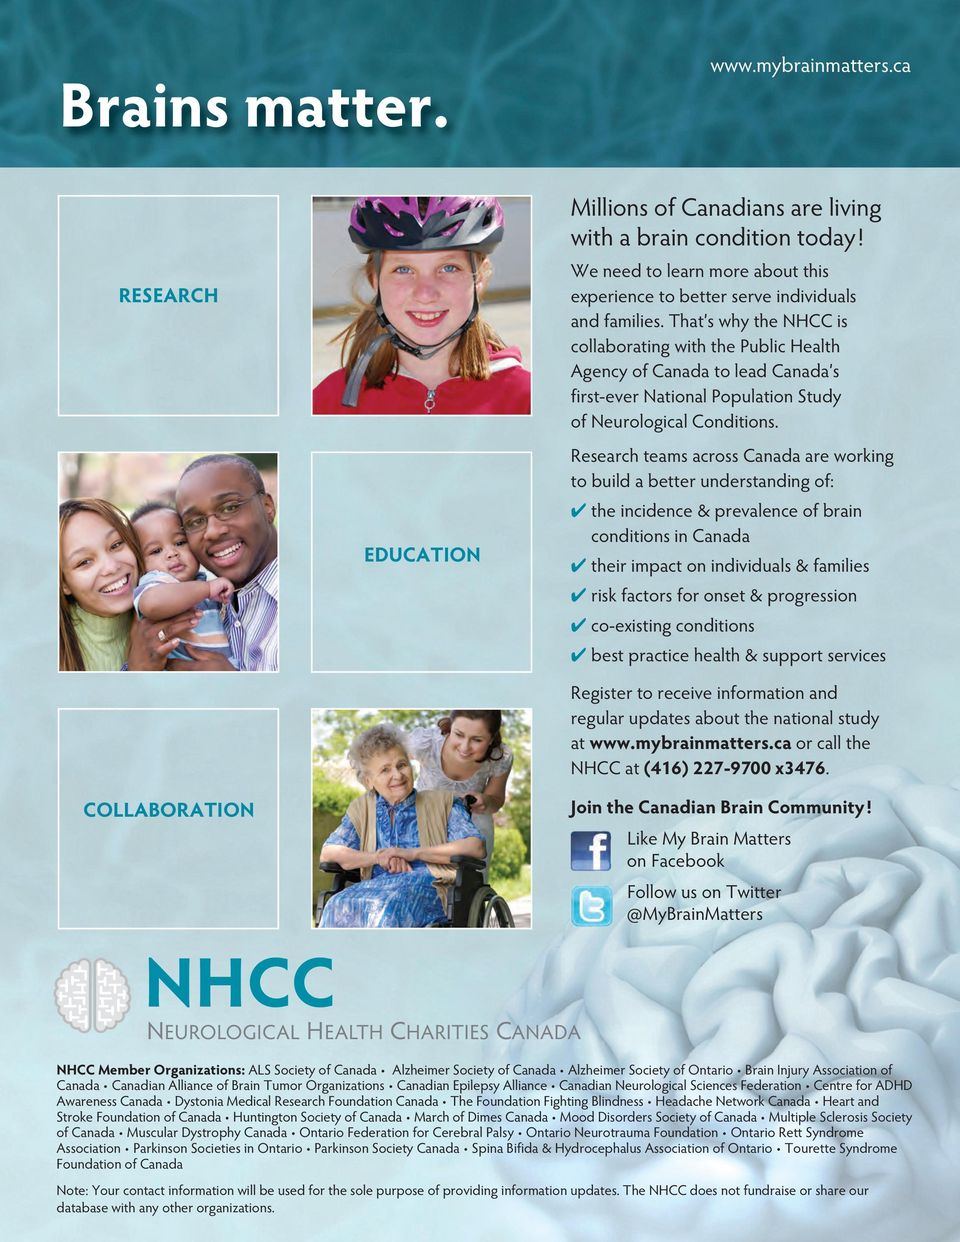 That s why the NHCC is collaborating with the Public Health Agency of Canada to lead Canada s first-ever National Population Study of Neurological Conditions.